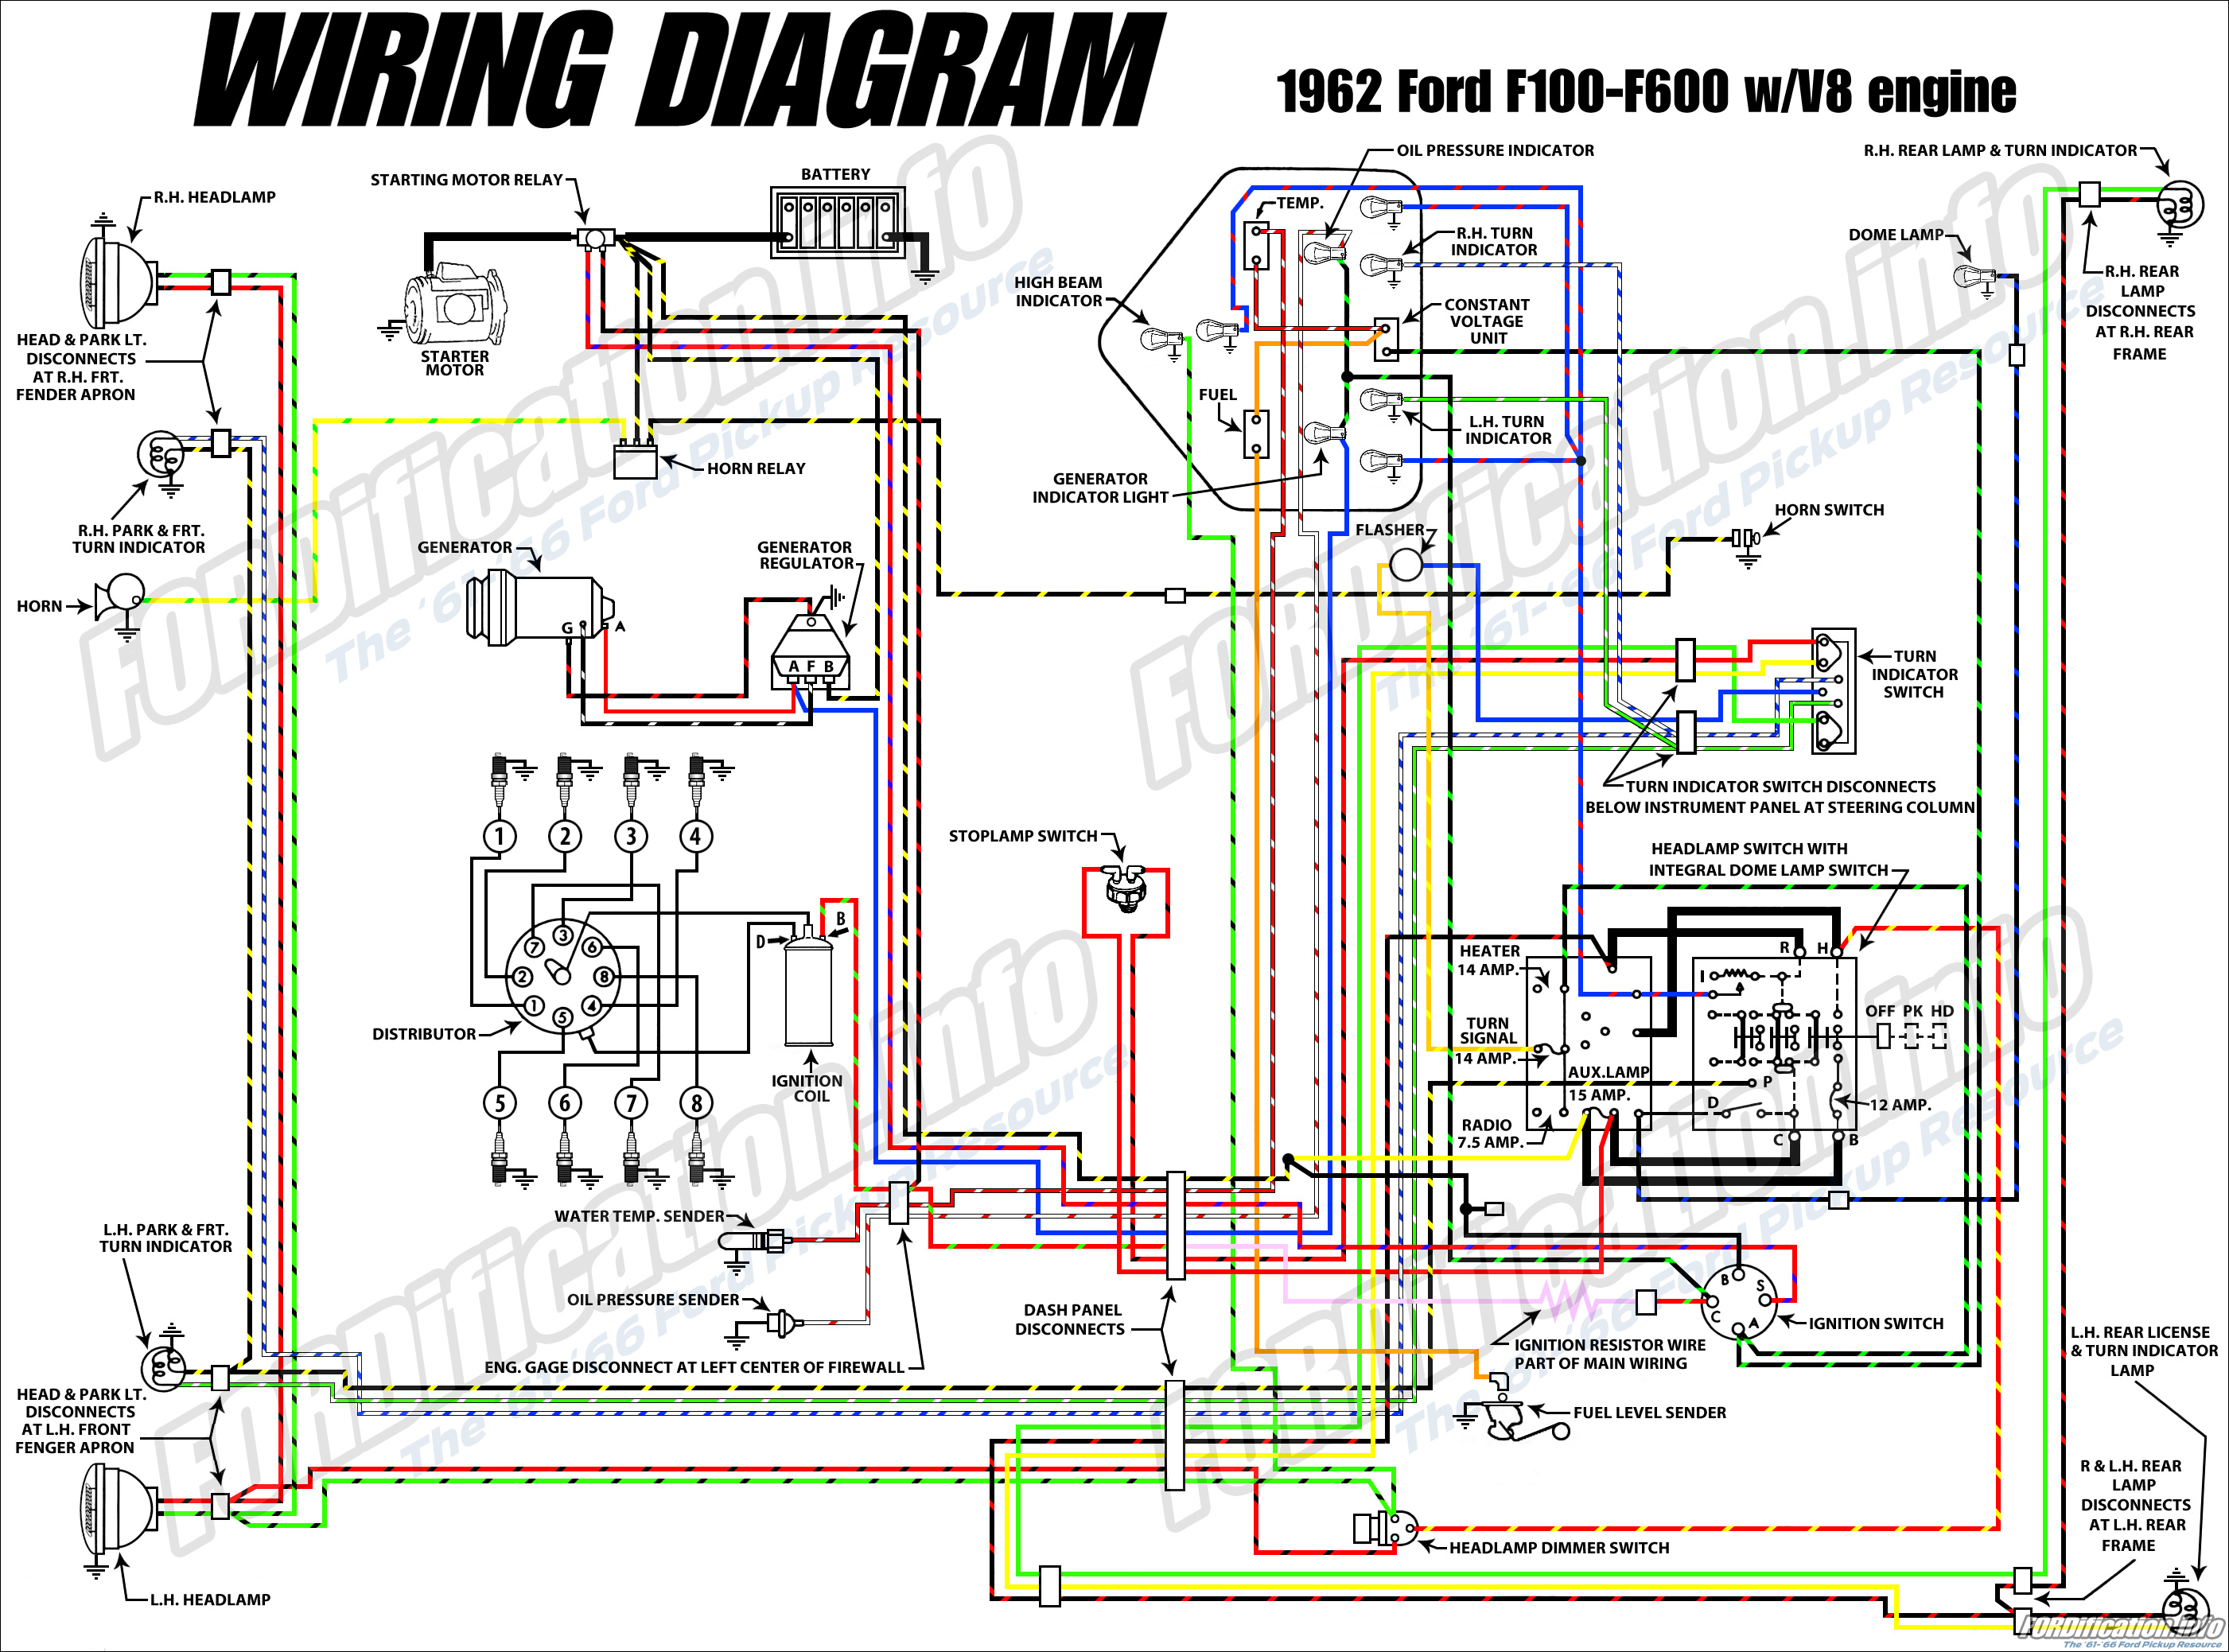 9EE9 88 Ford Truck Wire Diagram | Wiring Resources  Ford F Wiring Diagram on 1982 ford f150 wiring diagram, 1992 ford l8000 wiring diagram, 84 ford f150 wiring diagram, 88 ford gt wiring diagram, 1999 ford truck wiring diagram, 96 ford f-250 wiring diagram, 2010 f150 stereo wiring diagram, 1988 ford f150 fuel system diagram, ford ignition module wiring diagram, 1988 ford f-250 wiring diagram, ford starter wiring diagram, f150 radio wiring diagram, 88 chevy silverado wiring diagram, 88 toyota camry wiring diagram, ford electronic ignition wiring diagram, 88 dodge dakota wiring diagram, 1956 ford wiring diagram, ford truck engine wiring diagram, 88 nissan sentra wiring diagram, 03 f150 wiring diagram,